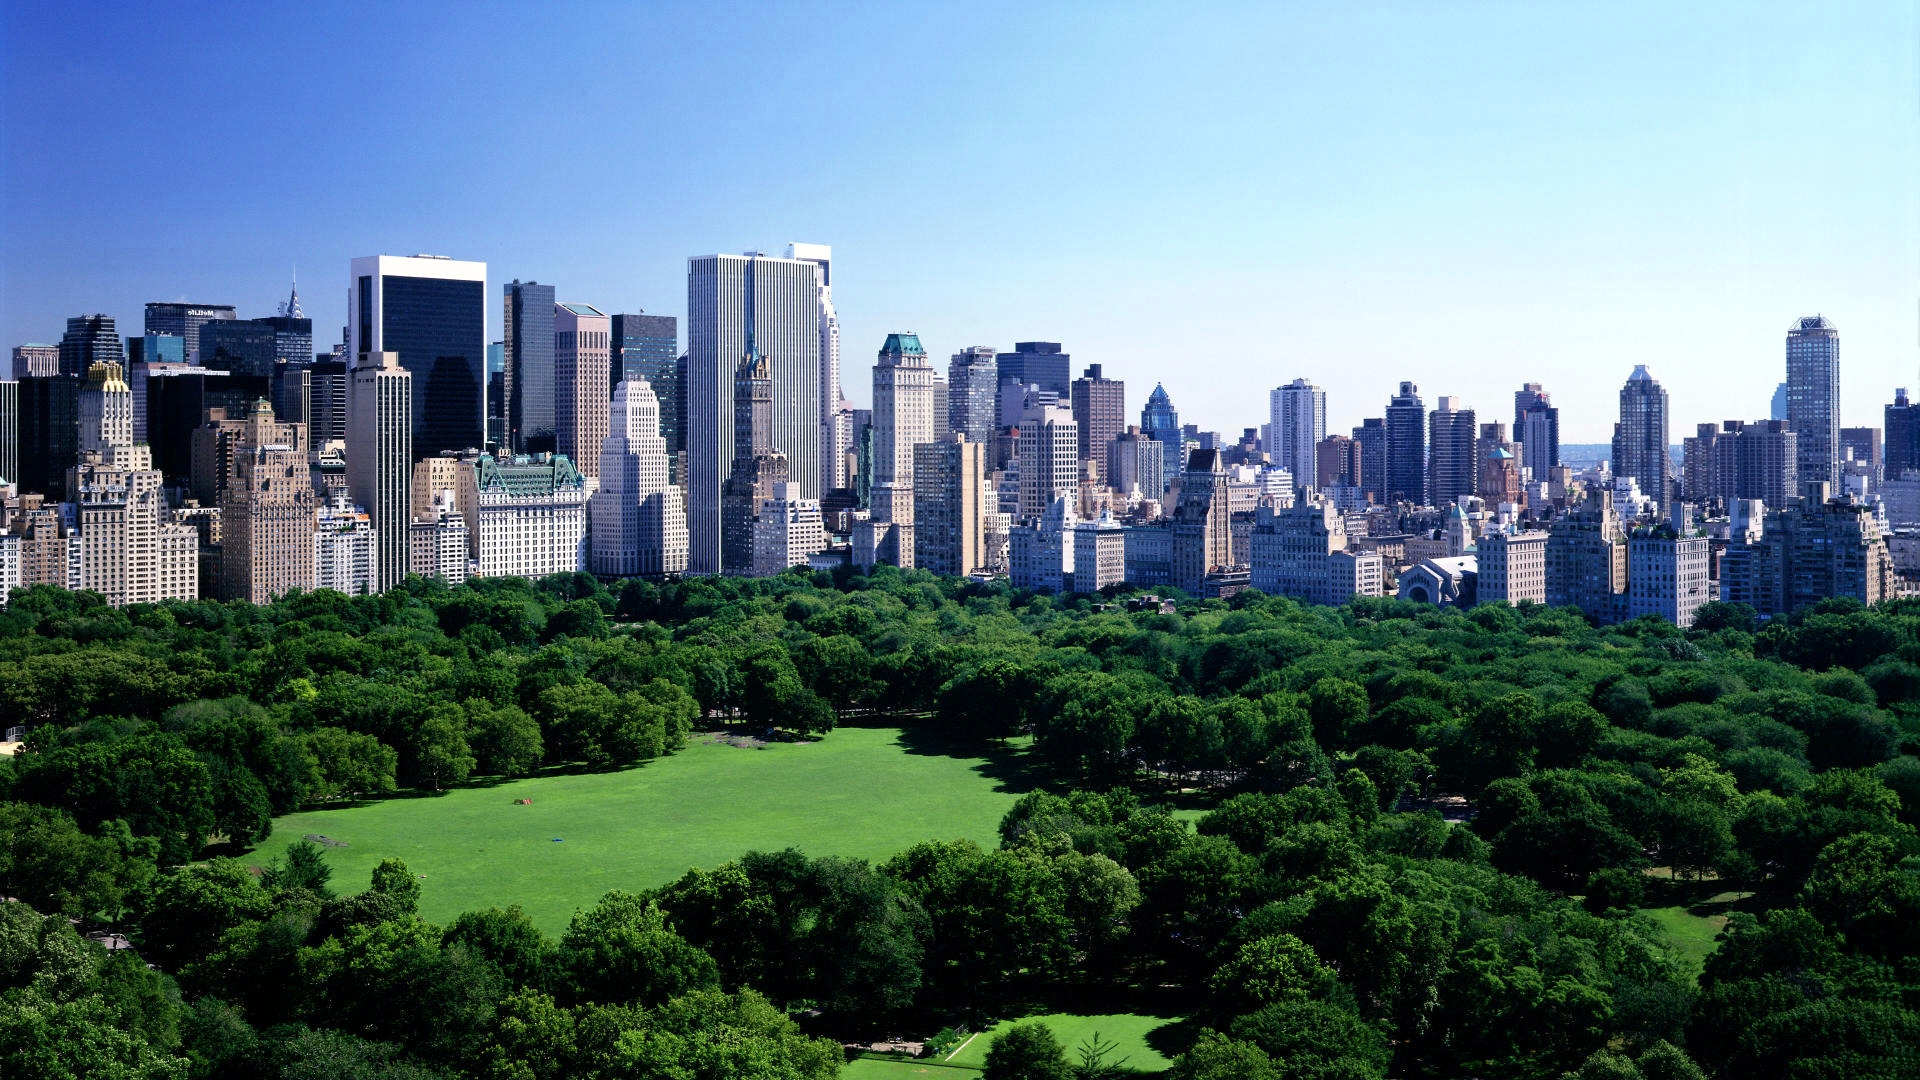 Central Park landscape. Virtual background to use on Zoom, Microsoft Teams, Skype, Google Meet, WebEx or any other compatible app.